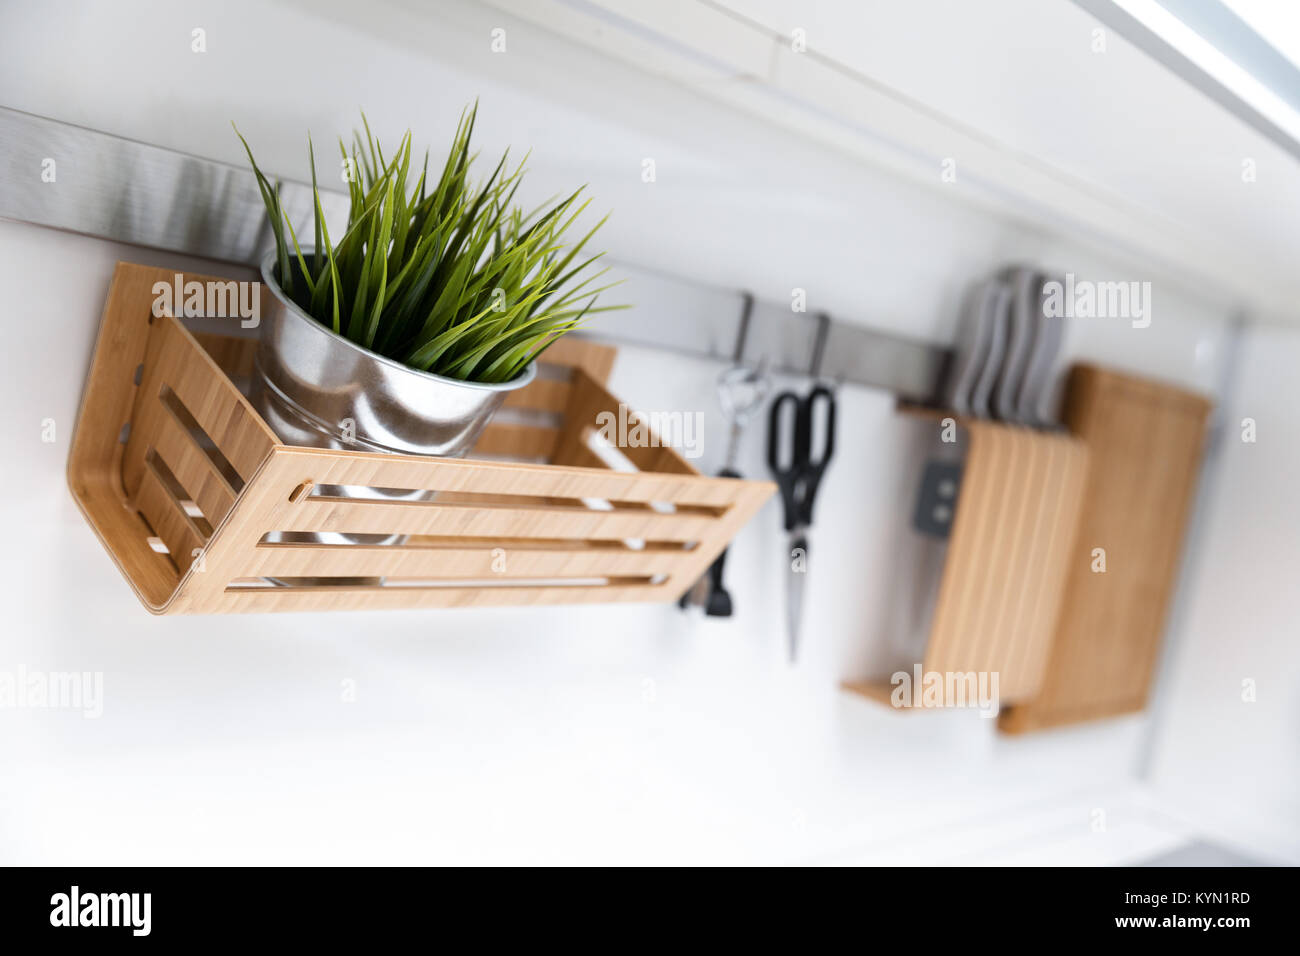 kitchen utensils and decor hanging on the white wall - Stock Image